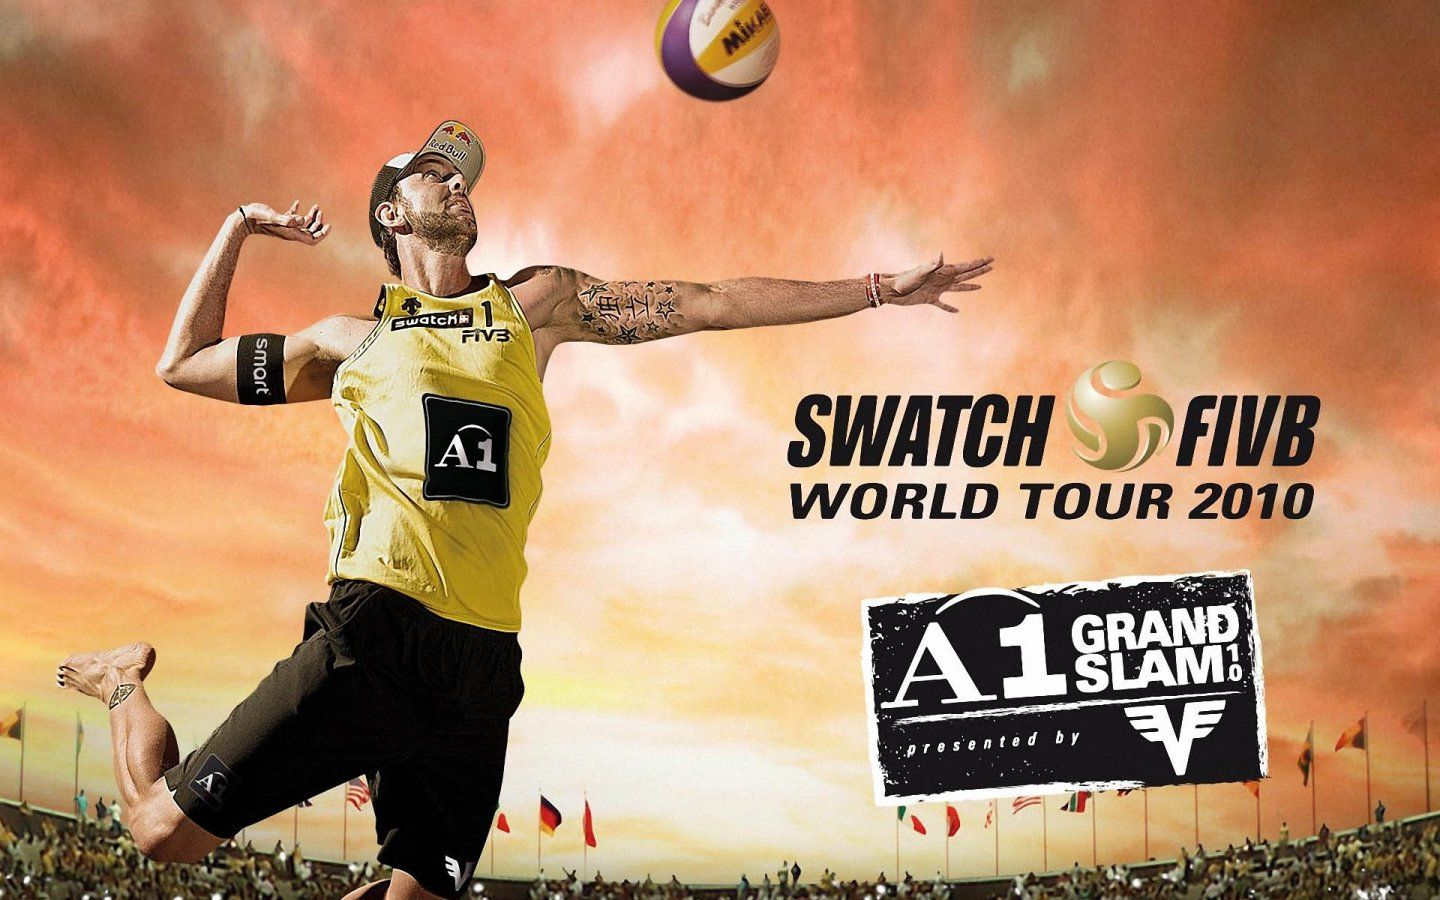 Swatch Fivb